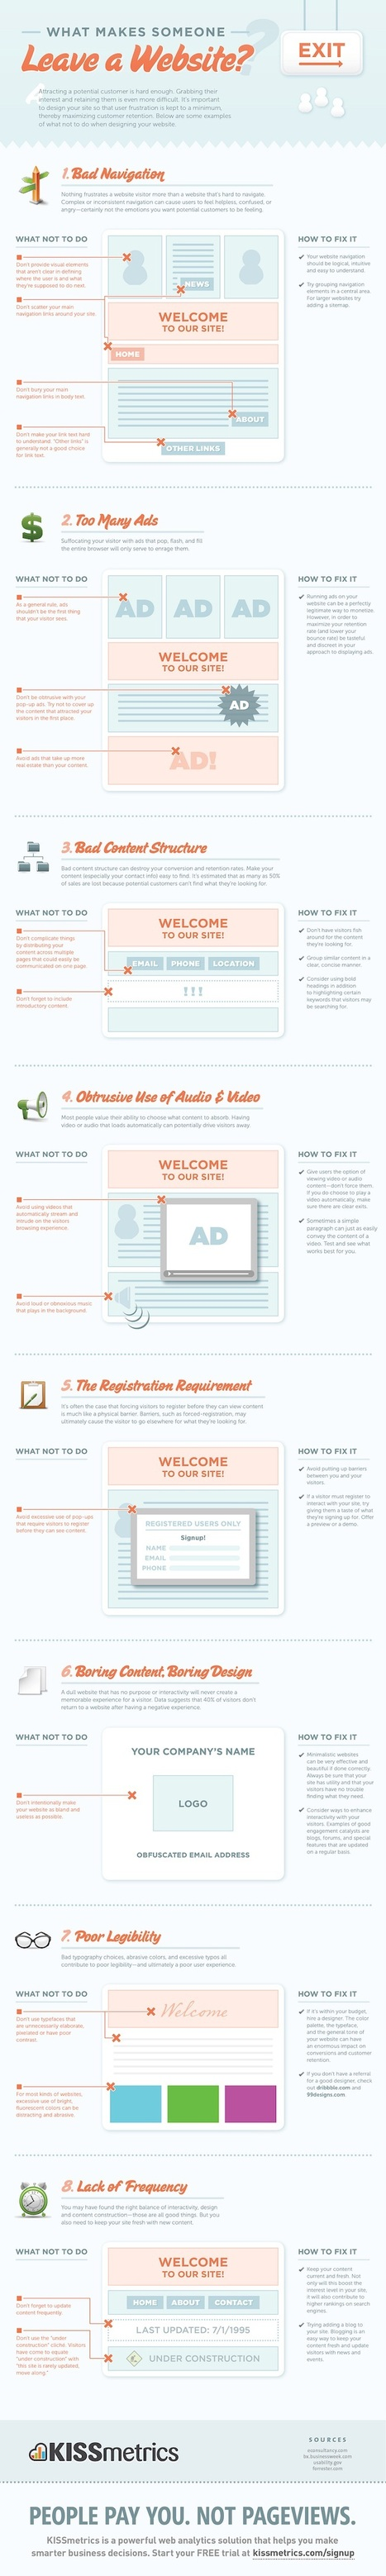 Why People Leave Your Website [Infographic] | MarketingHits | Scoop.it